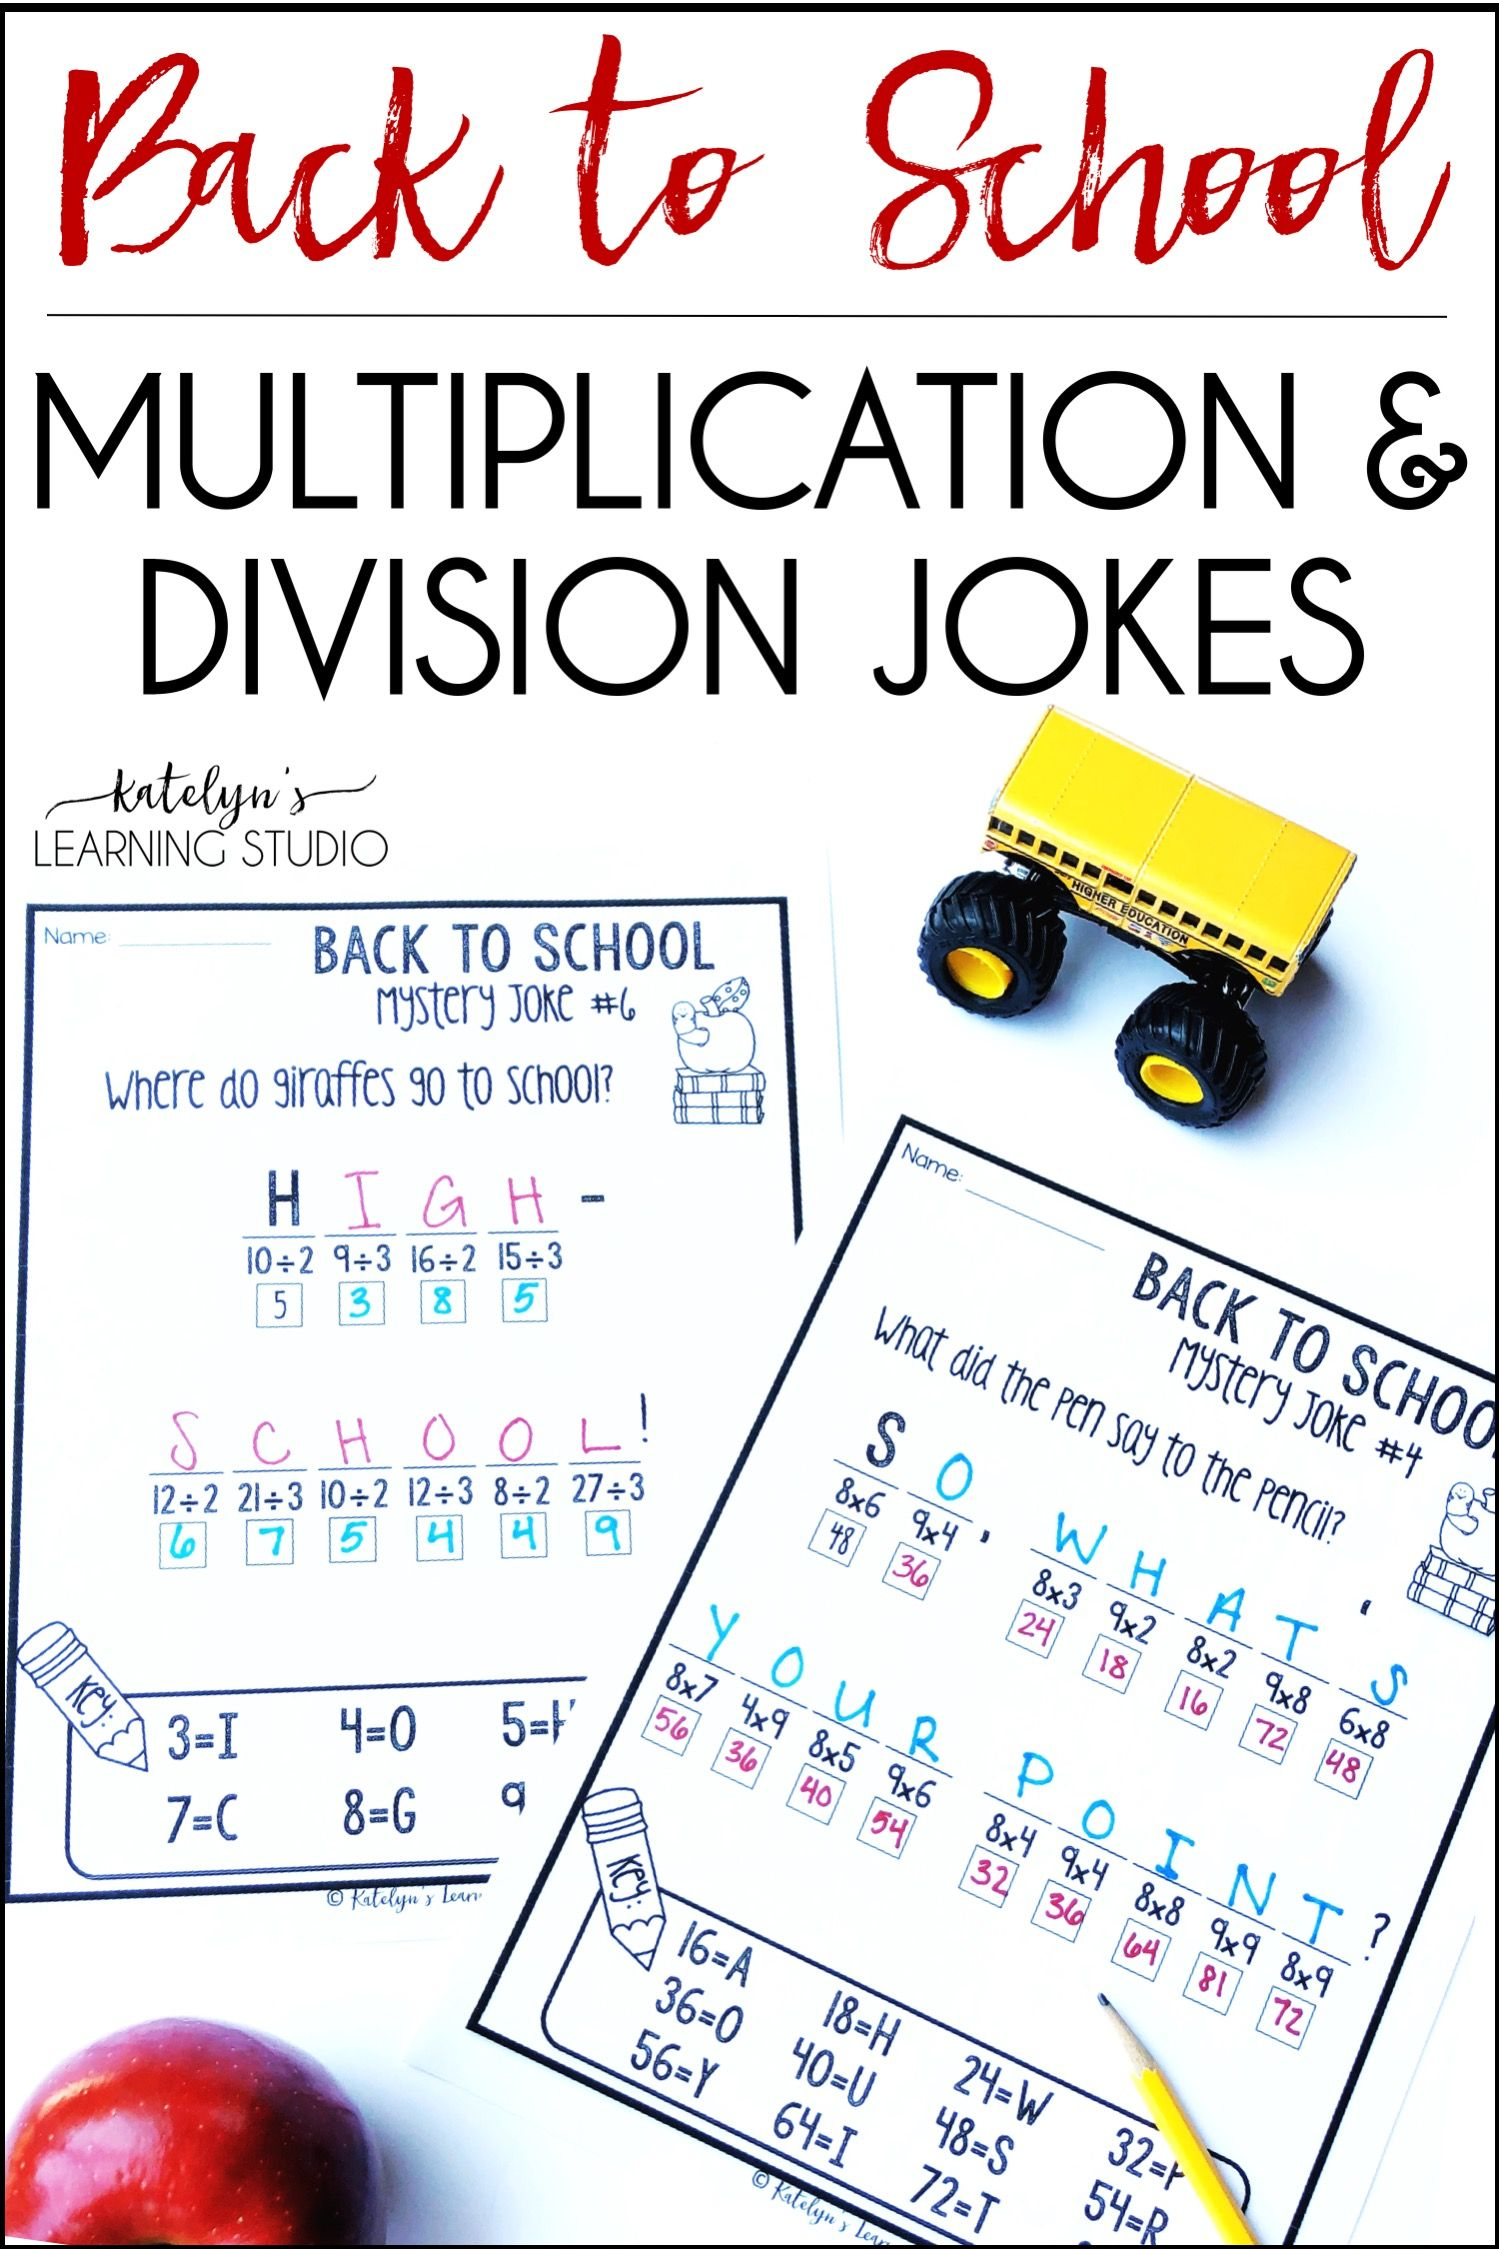 Back To School Multiplication And Division